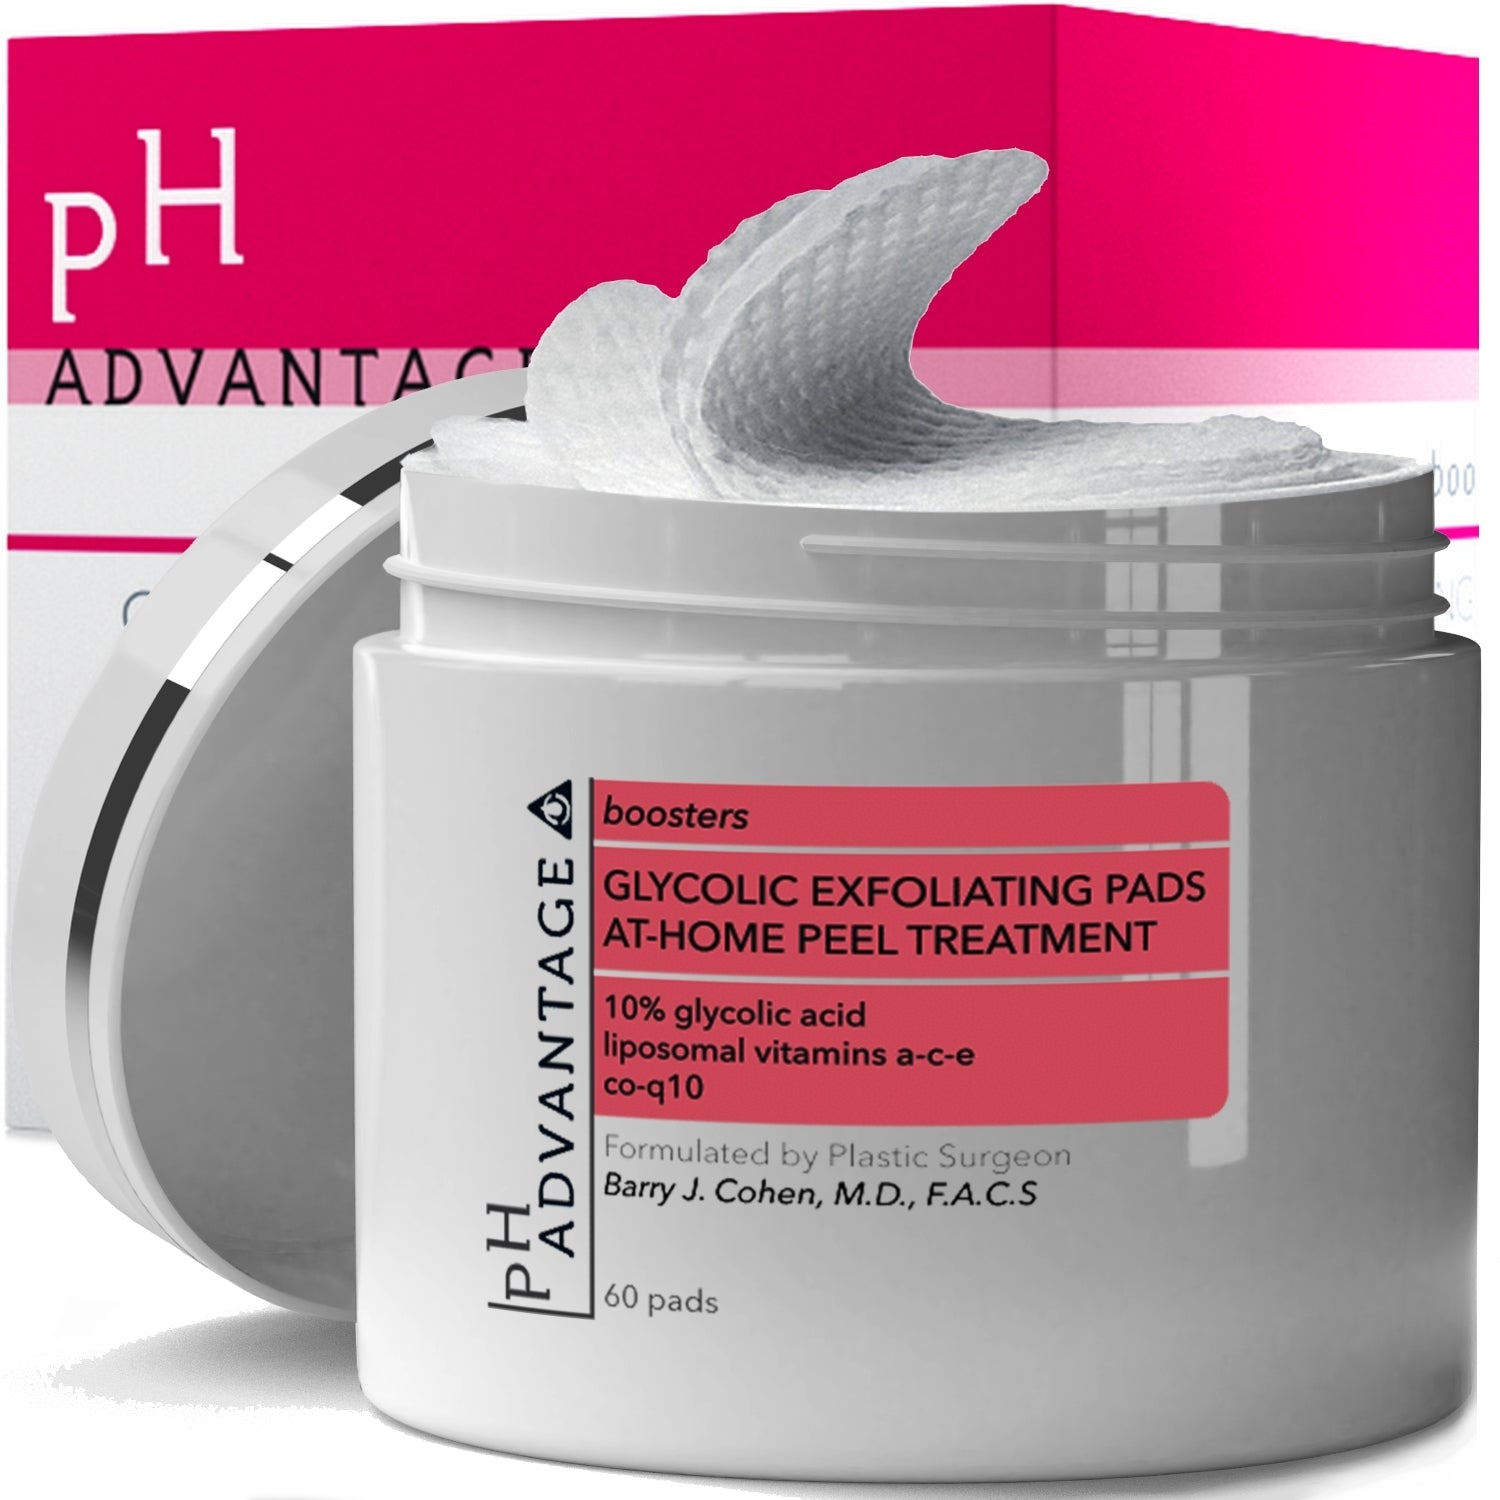 Glycolic Acid Pads - Anti Aging AHA Exfoliating Pads 60 ct